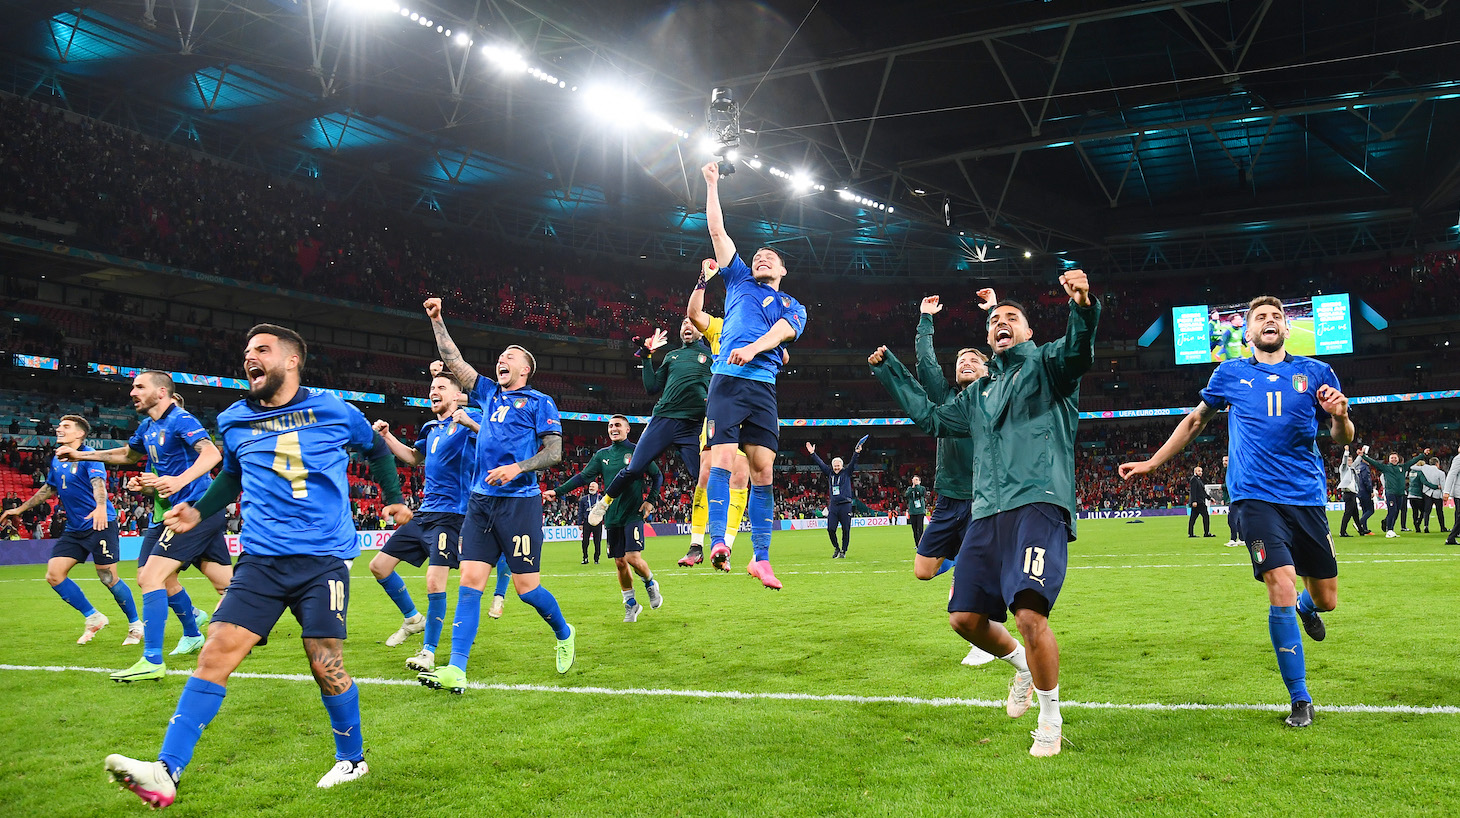 Players of Italy celebrate following their team's victory in the penalty shoot out after the UEFA Euro 2020 Championship Semi-final match between Italy and Spain at Wembley Stadium on July 06, 2021 in London, England.